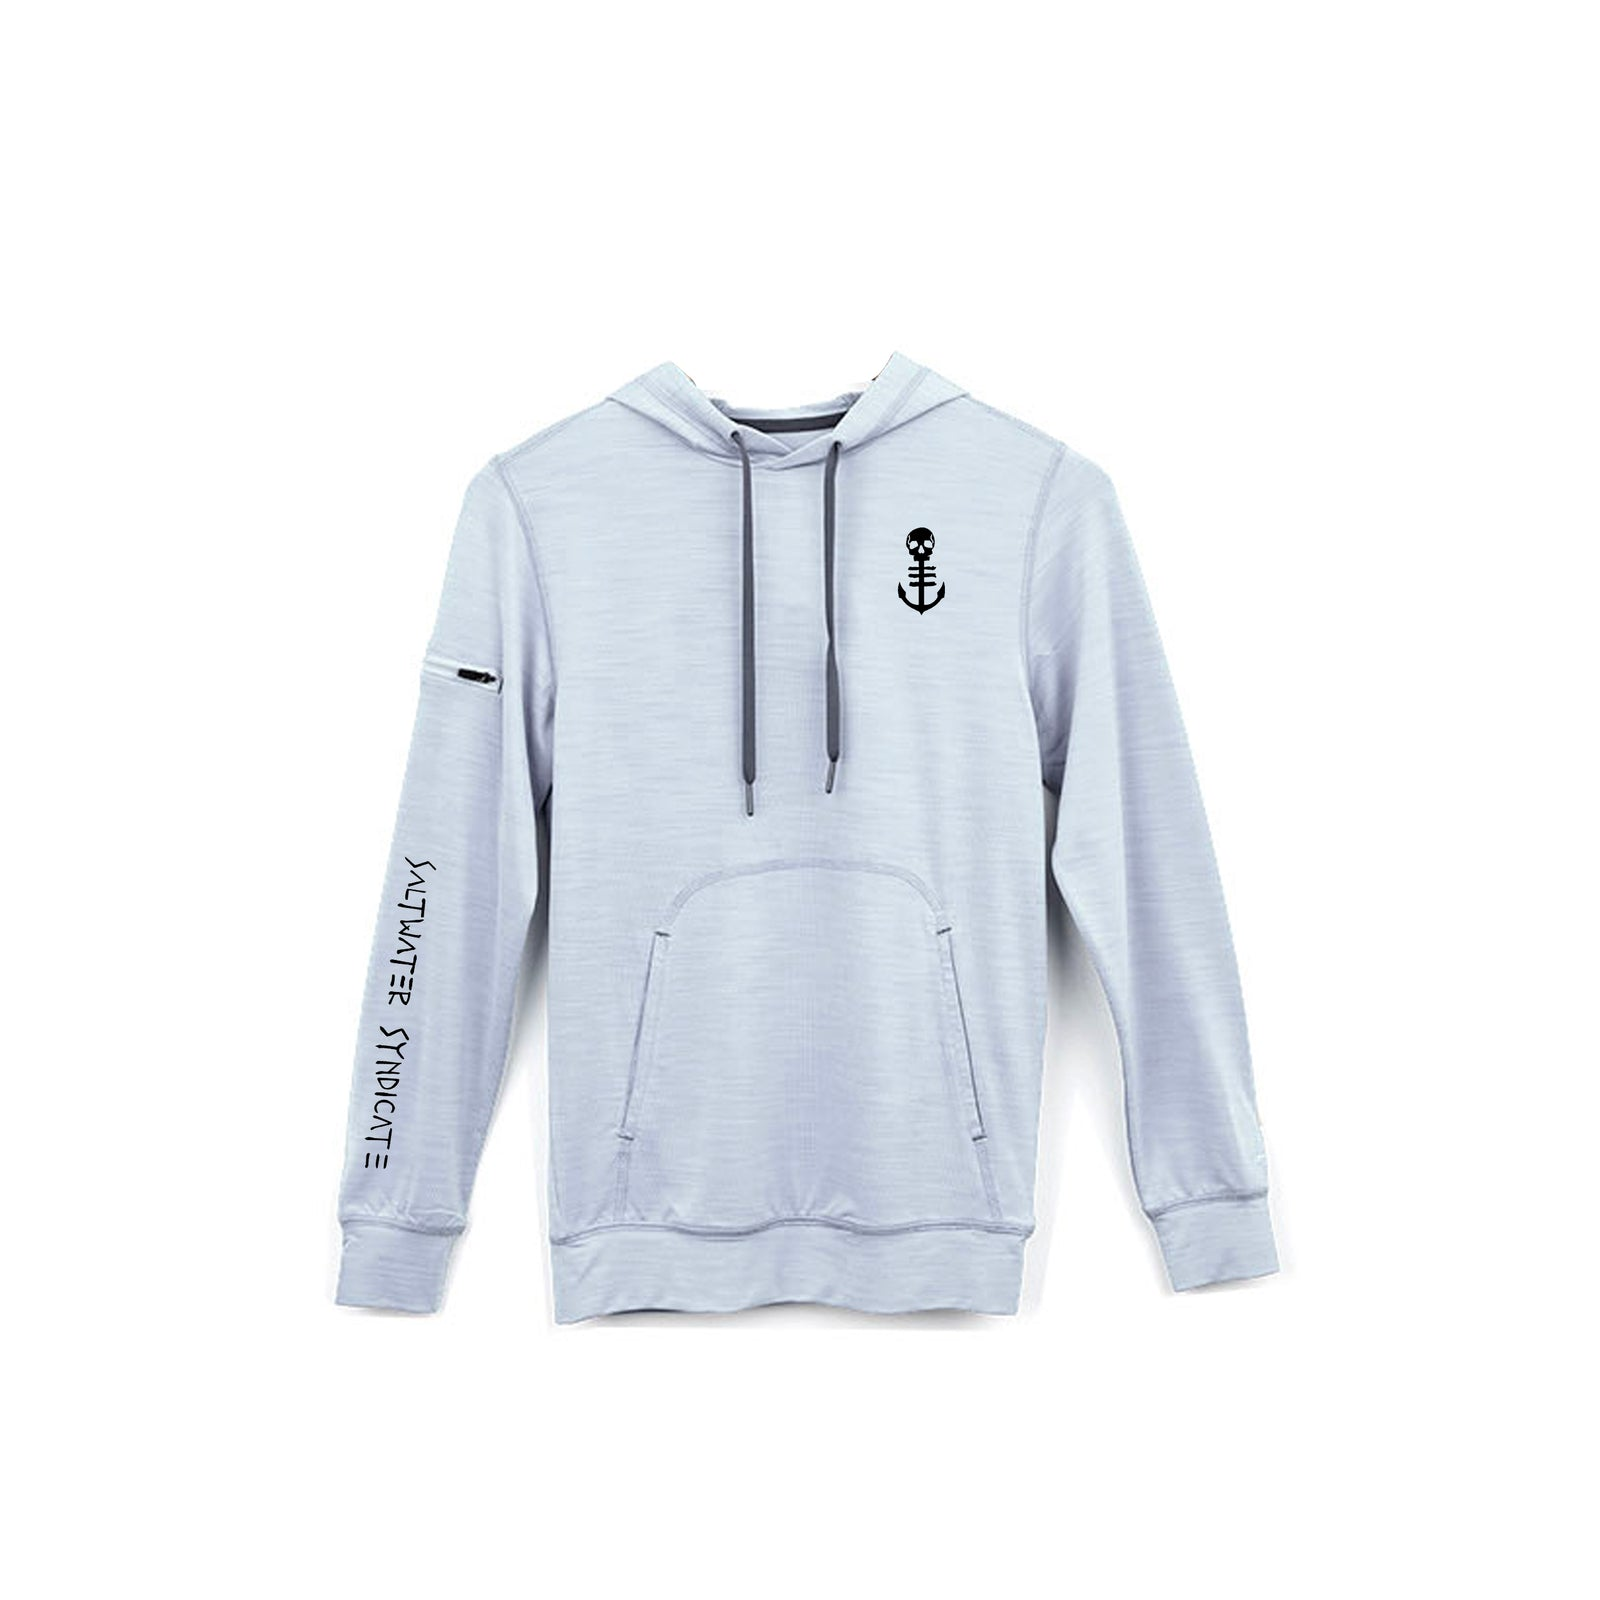 Synd-tek Ultra Performance Hoodie - Grey